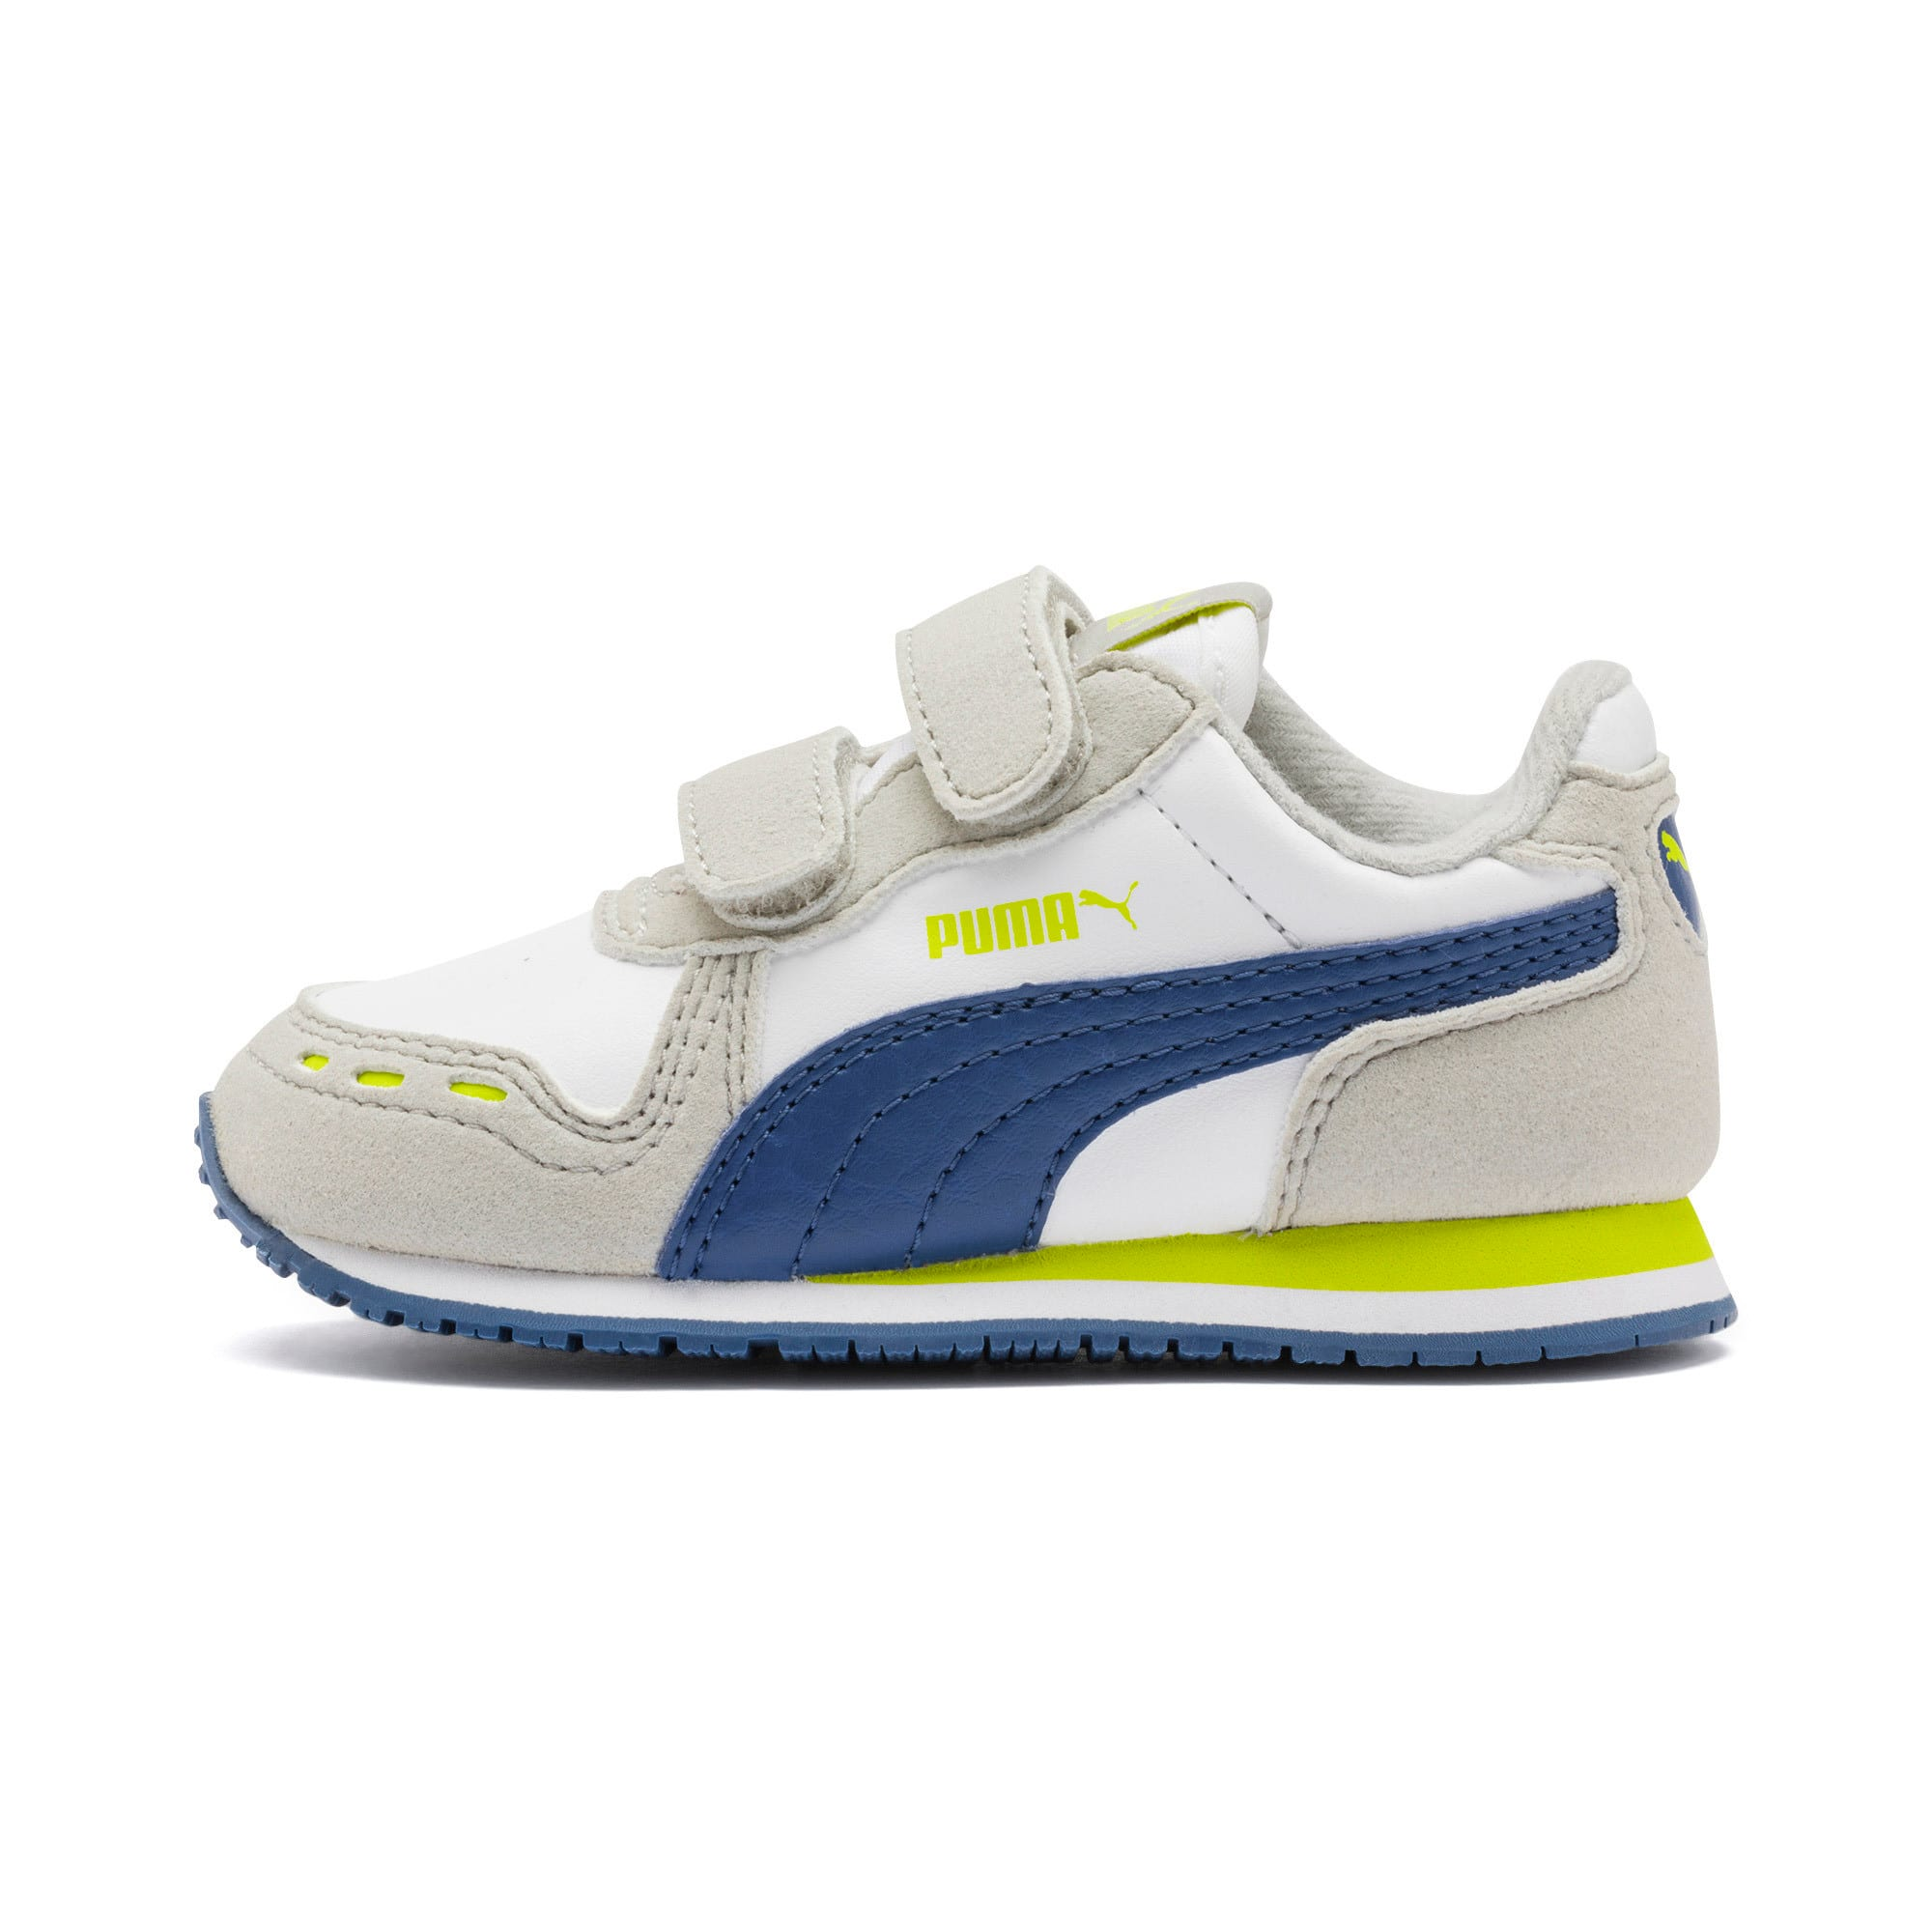 Cabana Racer SL Baby Trainers, Puma White-Galaxy Blue, large